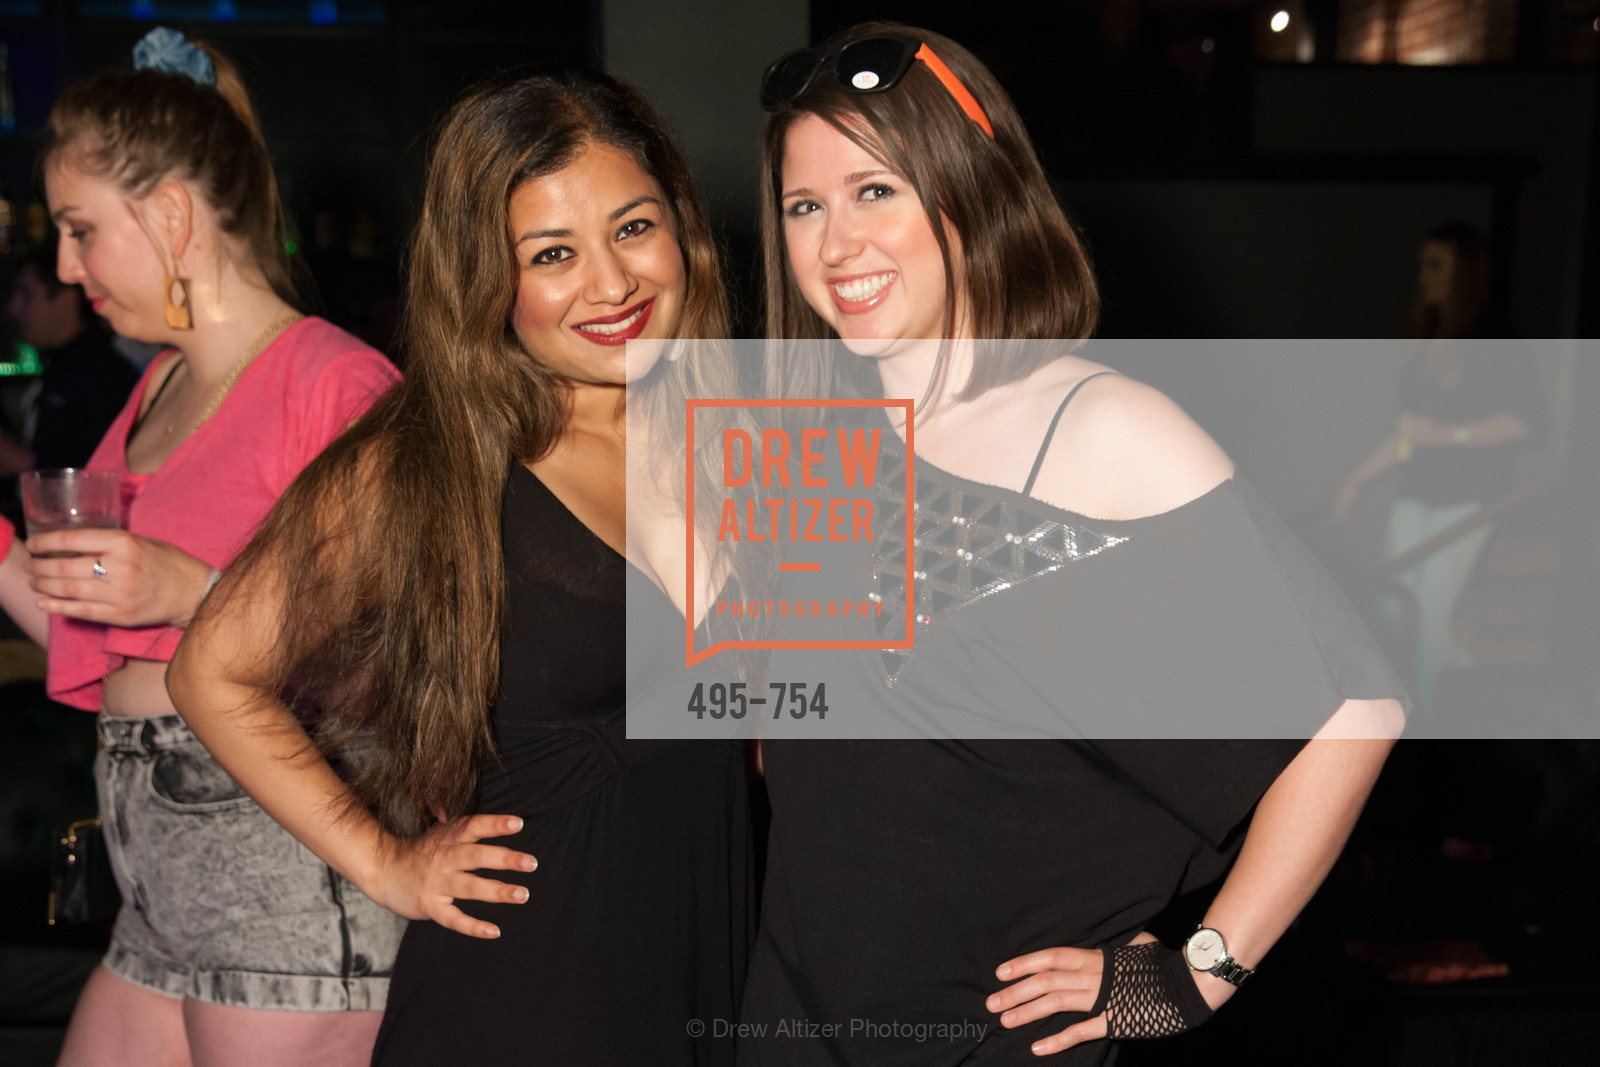 Priya Saiprasad, Libby Hall, SPINSTERS OF SAN FRANCISCO Party Like It's 1985 Charity Party, US, Fort One Bar & Lounge. 2801 Leavenworth St, May 30th, 2015,Drew Altizer, Drew Altizer Photography, full-service agency, private events, San Francisco photographer, photographer california